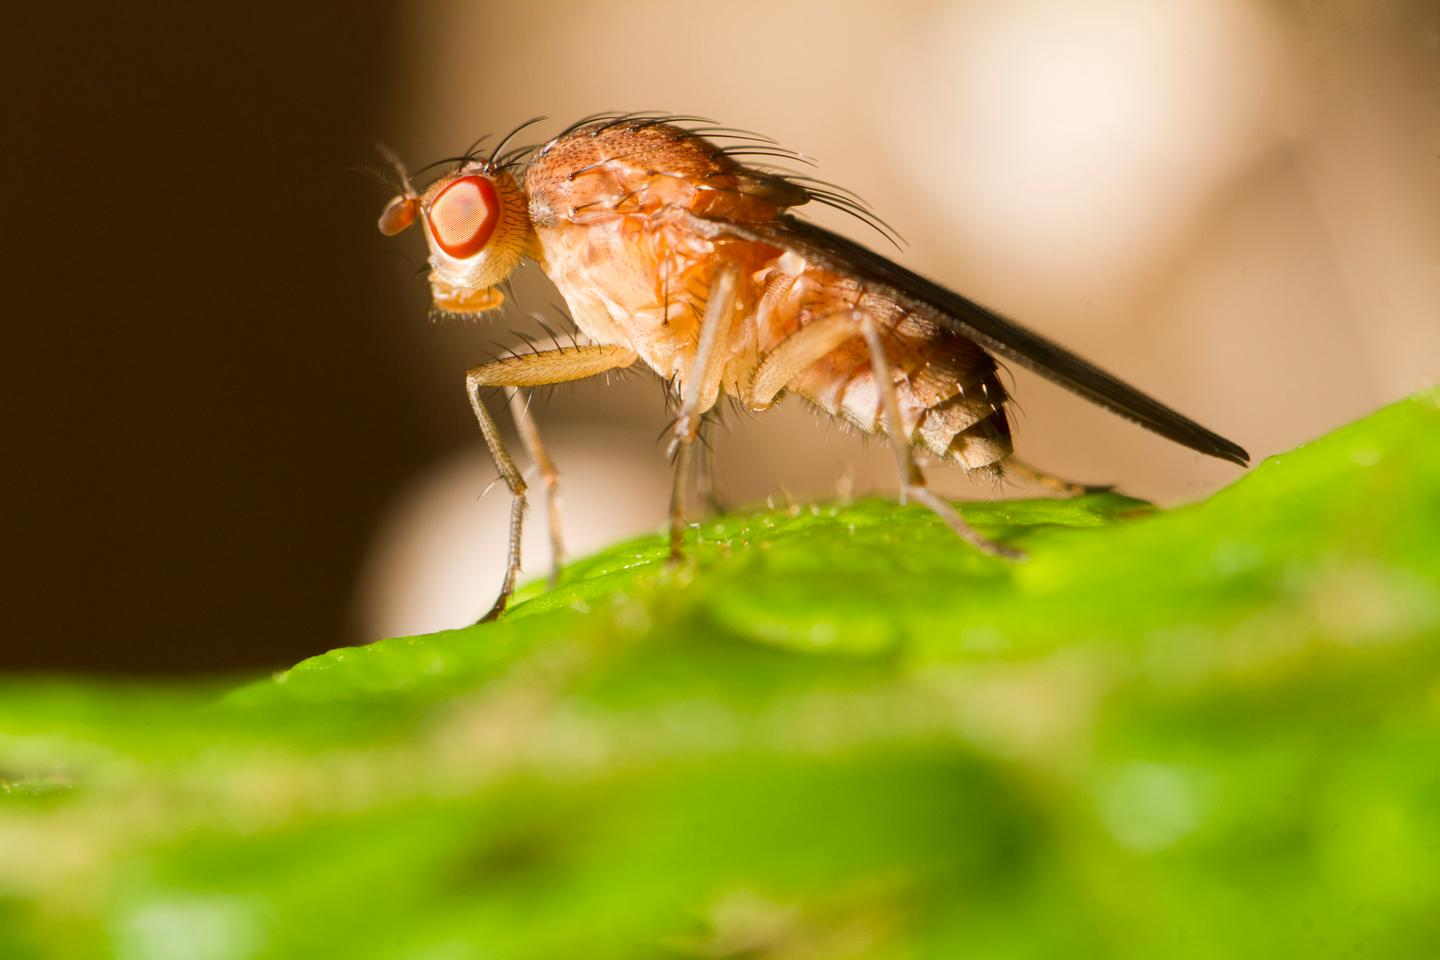 Scientists have found that keeping fruit flies in the dark for two days can affect the retention of traumatic memories